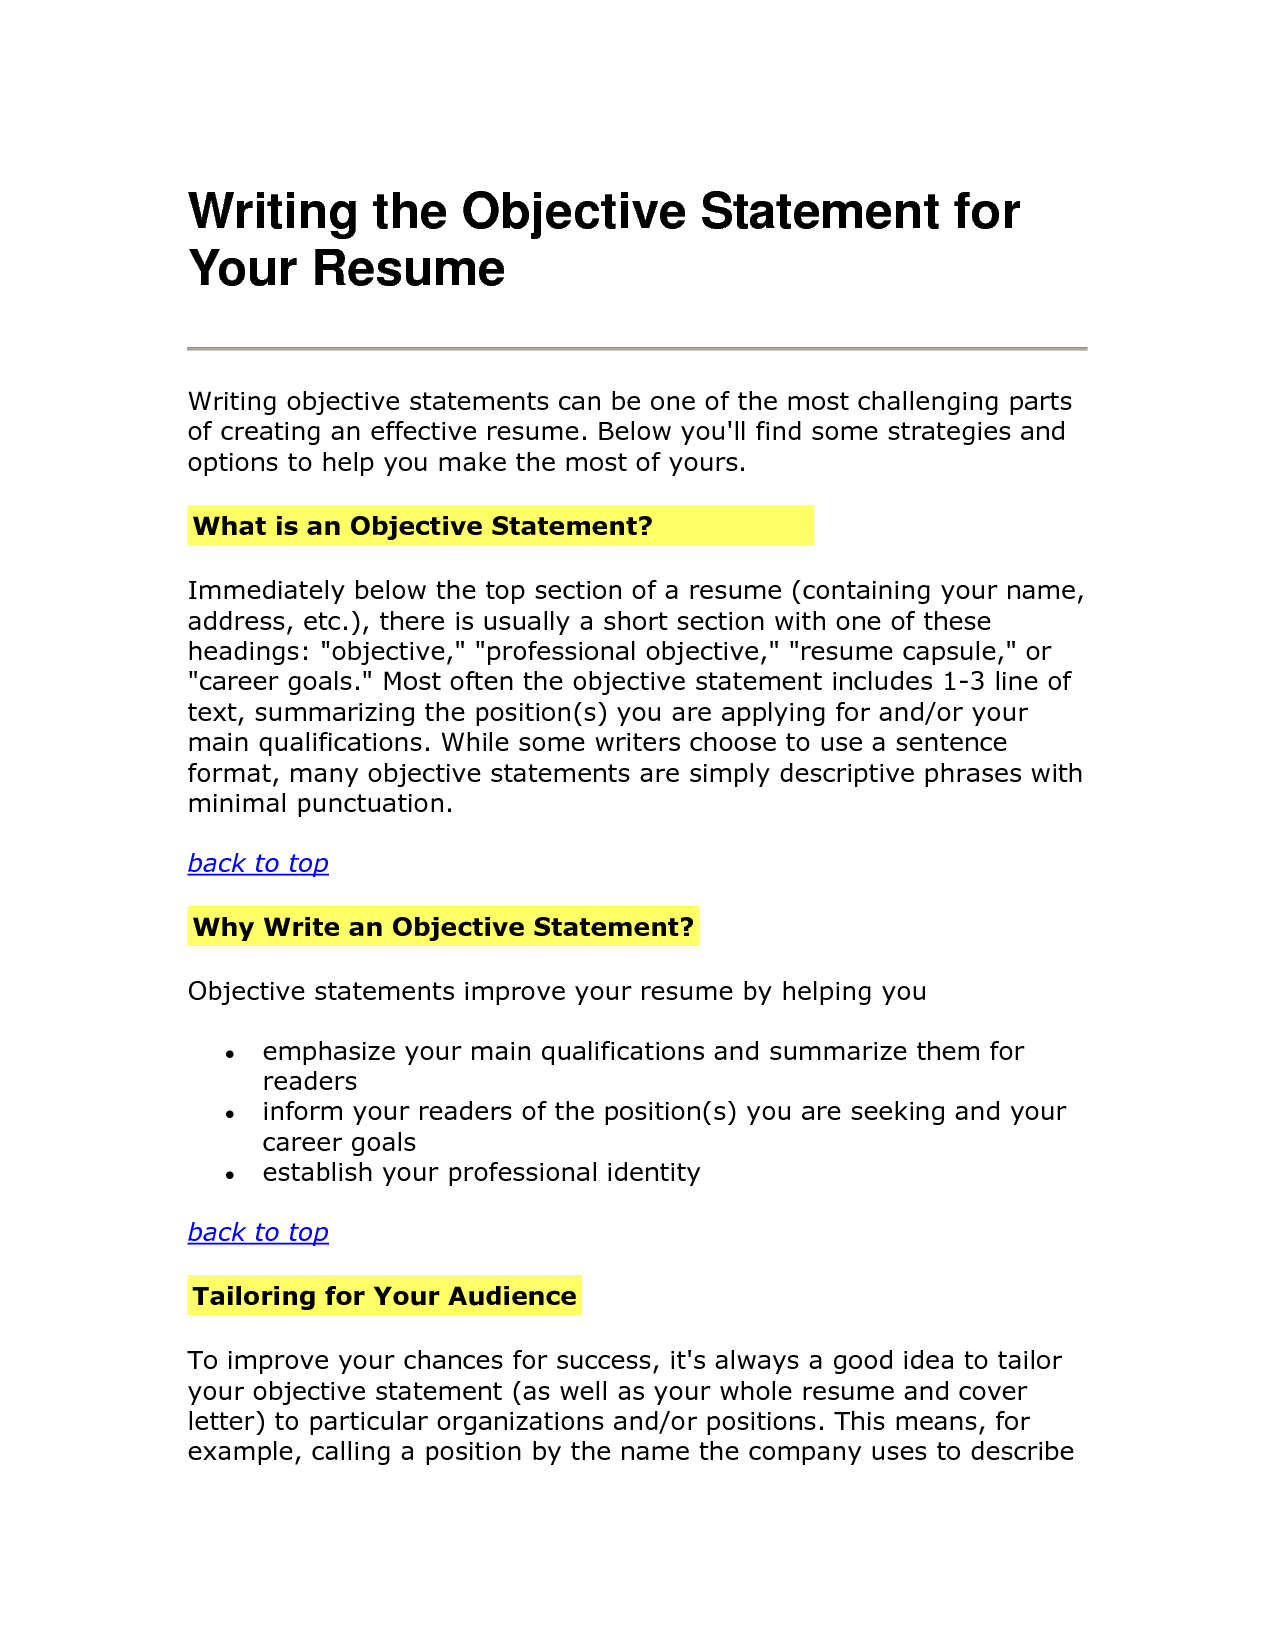 cv objectives statement